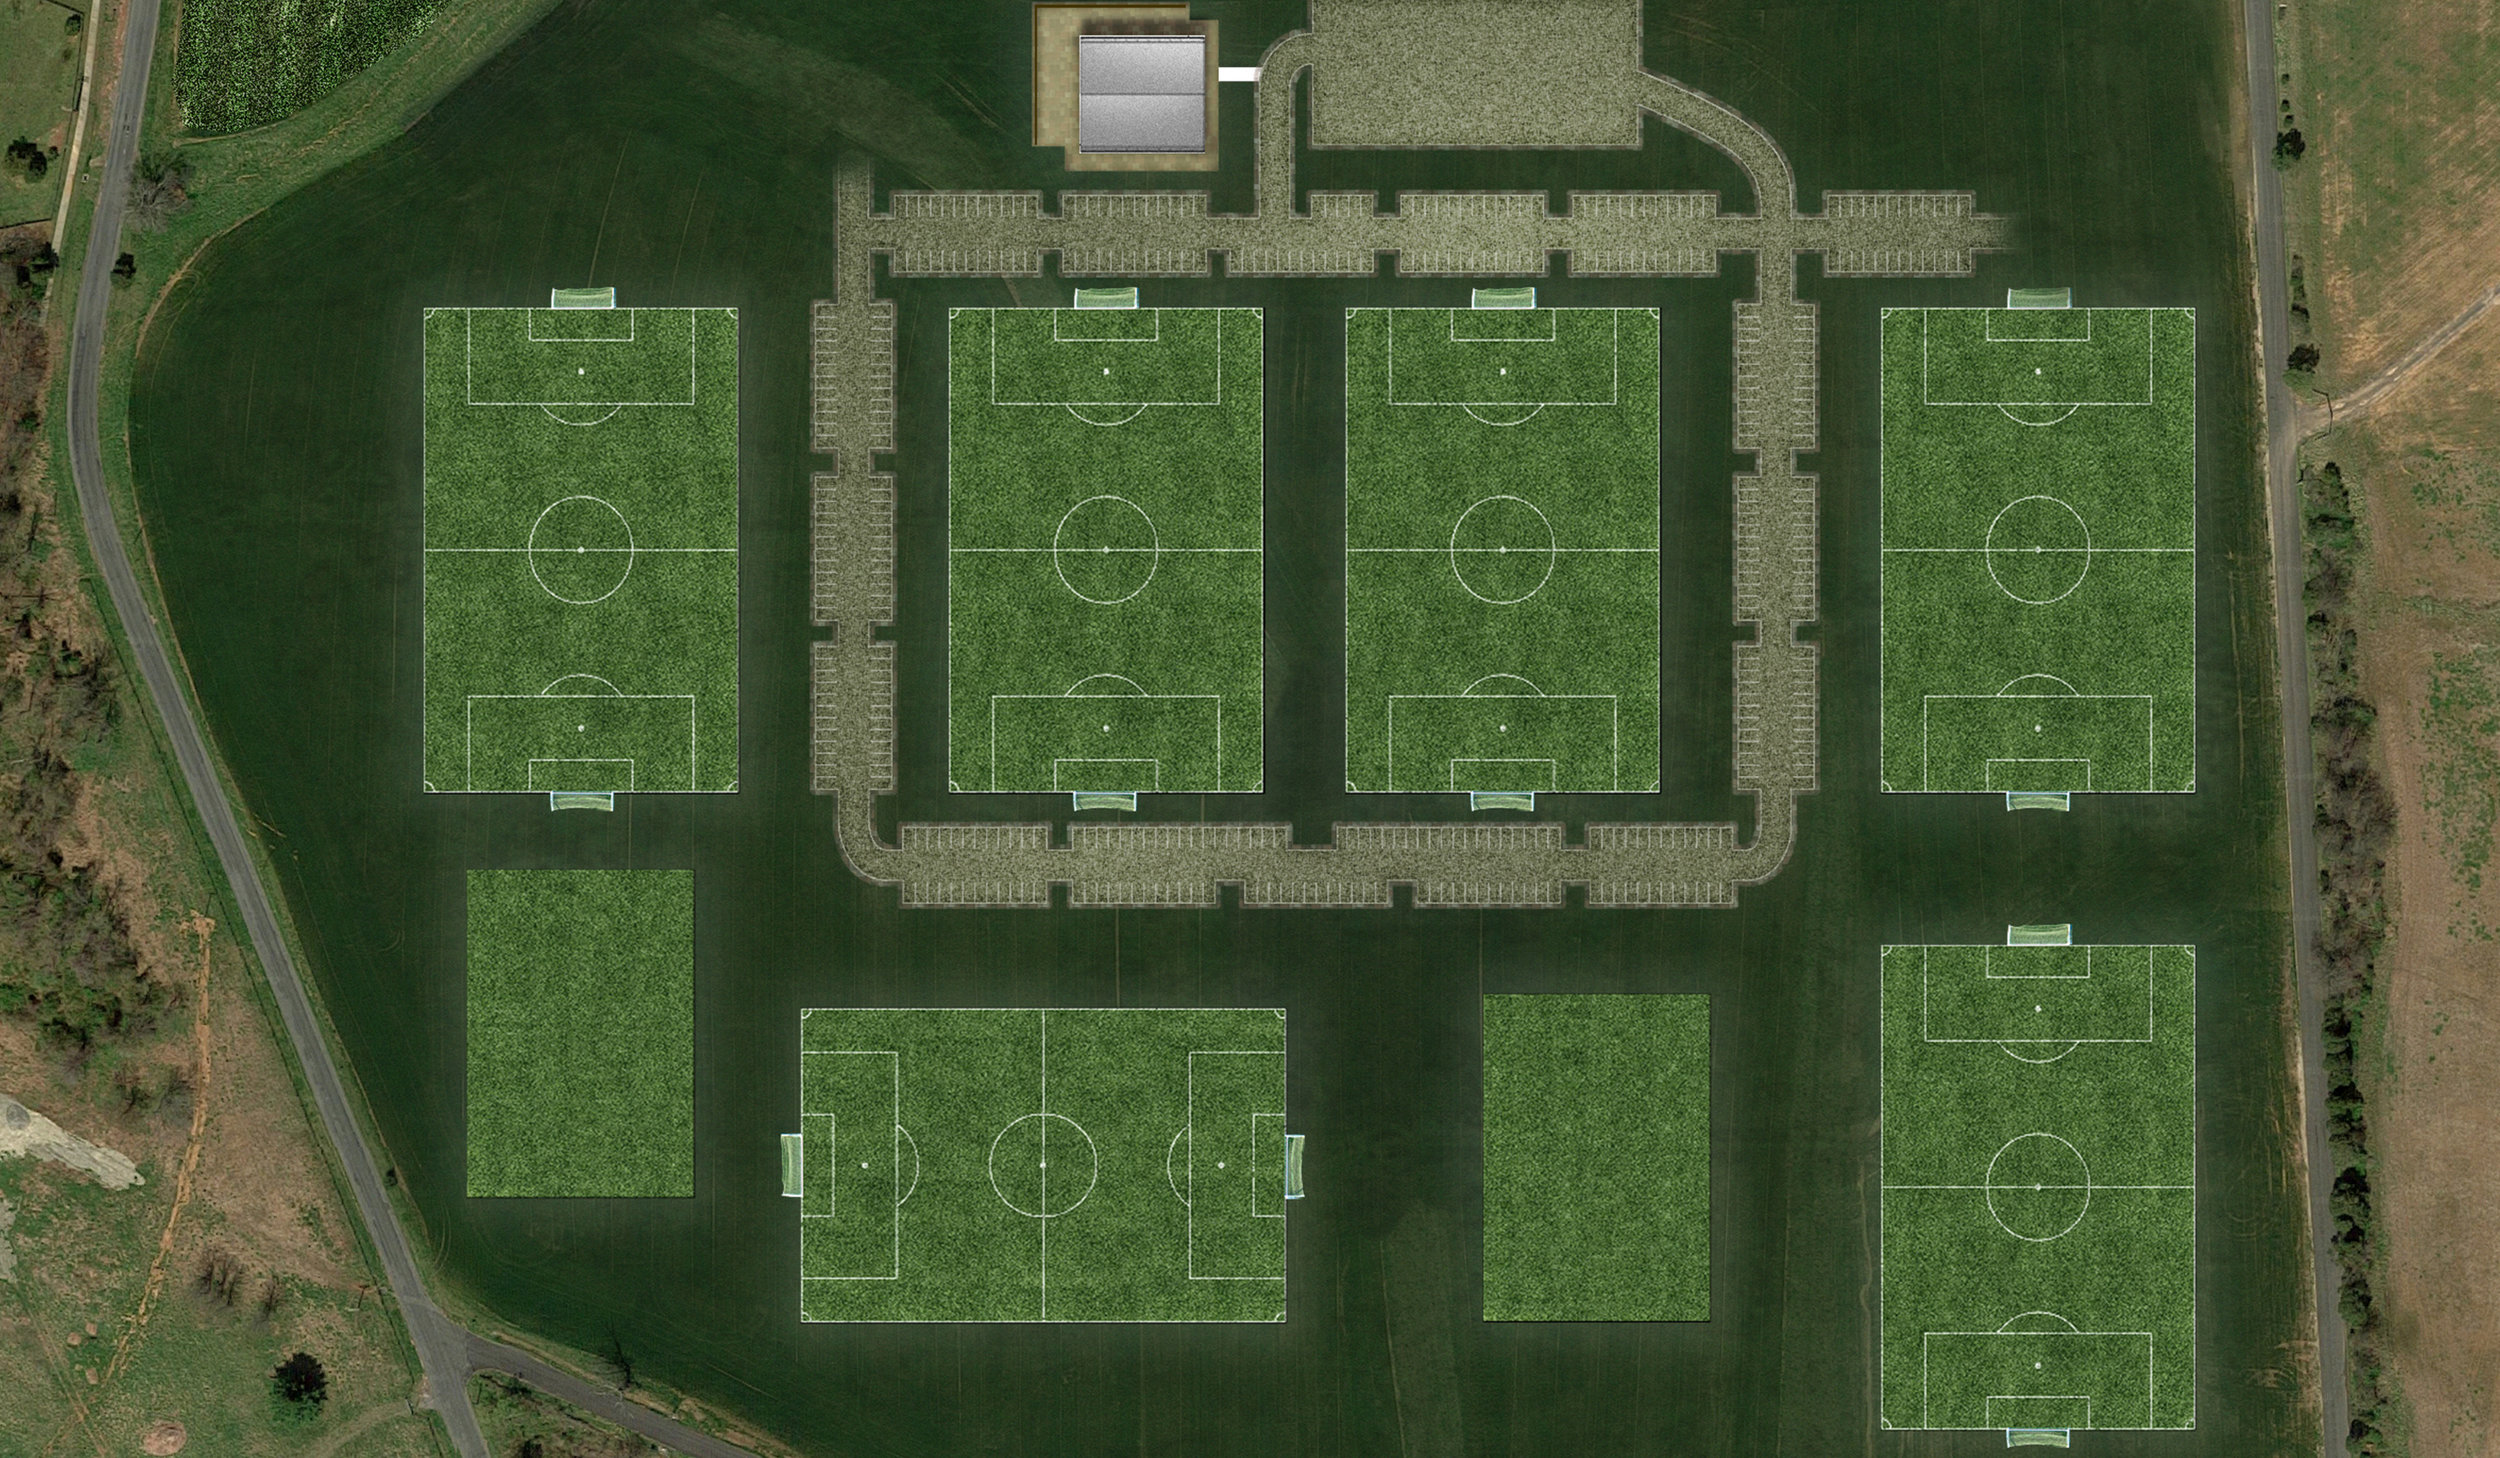 Meadowlard_Soccer_Fields.jpg